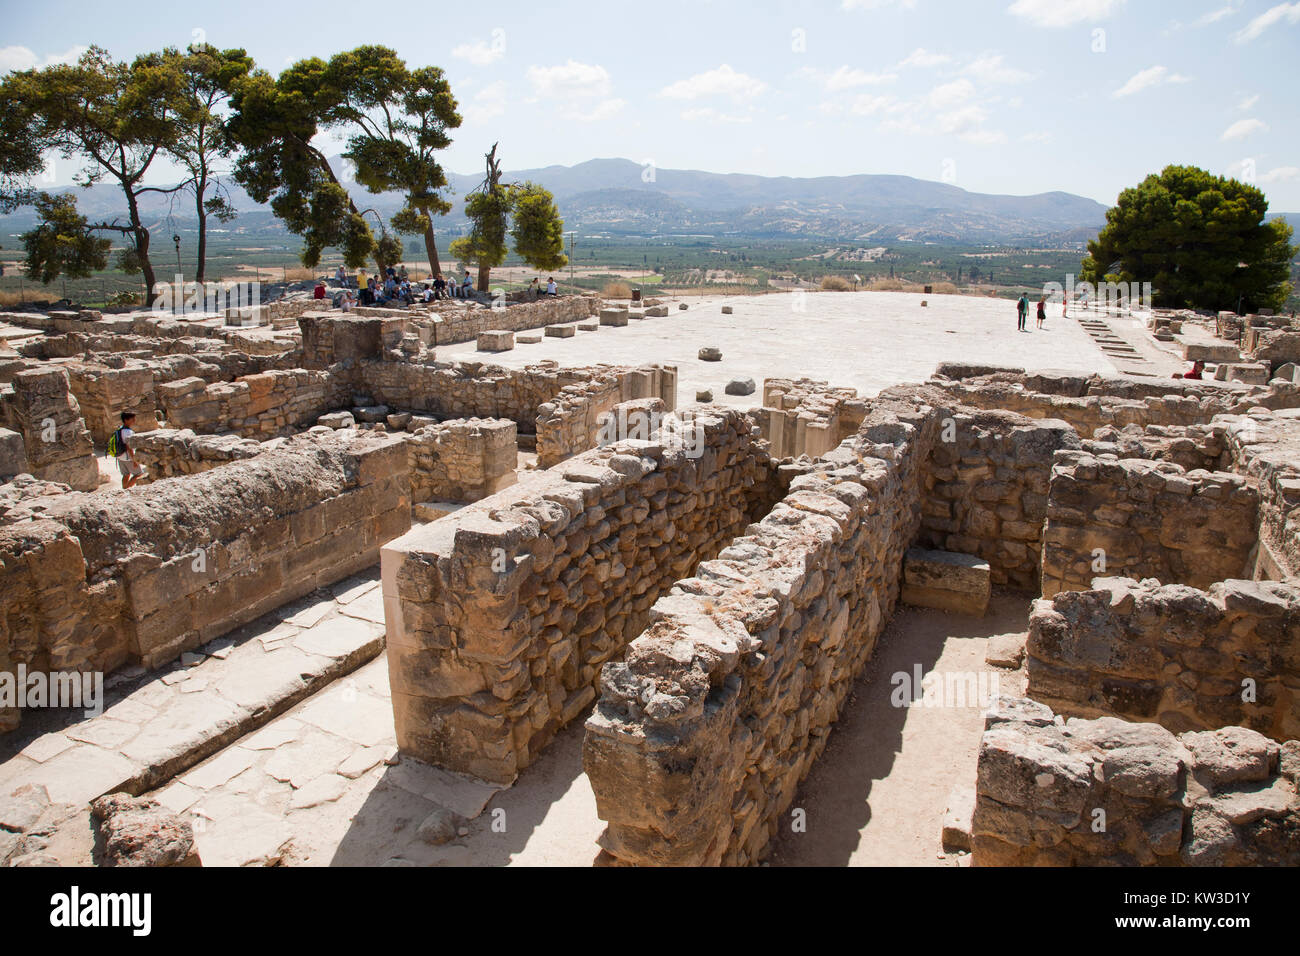 Central courtyard and area, Festos, archeological area, Crete island, Greece, Europe Stock Photo